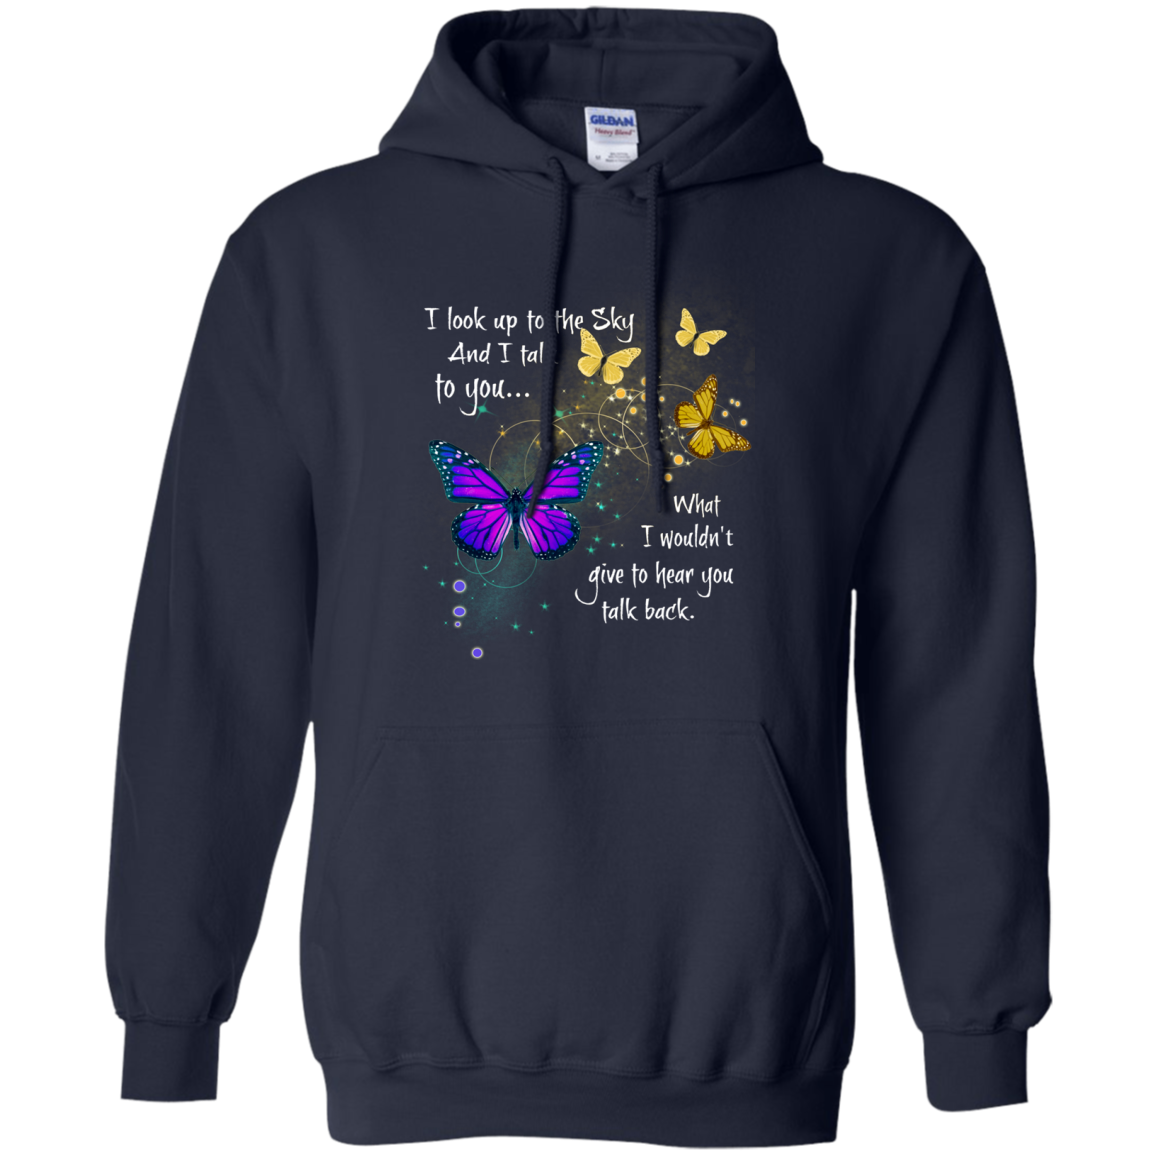 Butterfly T shirt Look Up To The Sky And I Talk To You Hoodies Sweatshirts TH